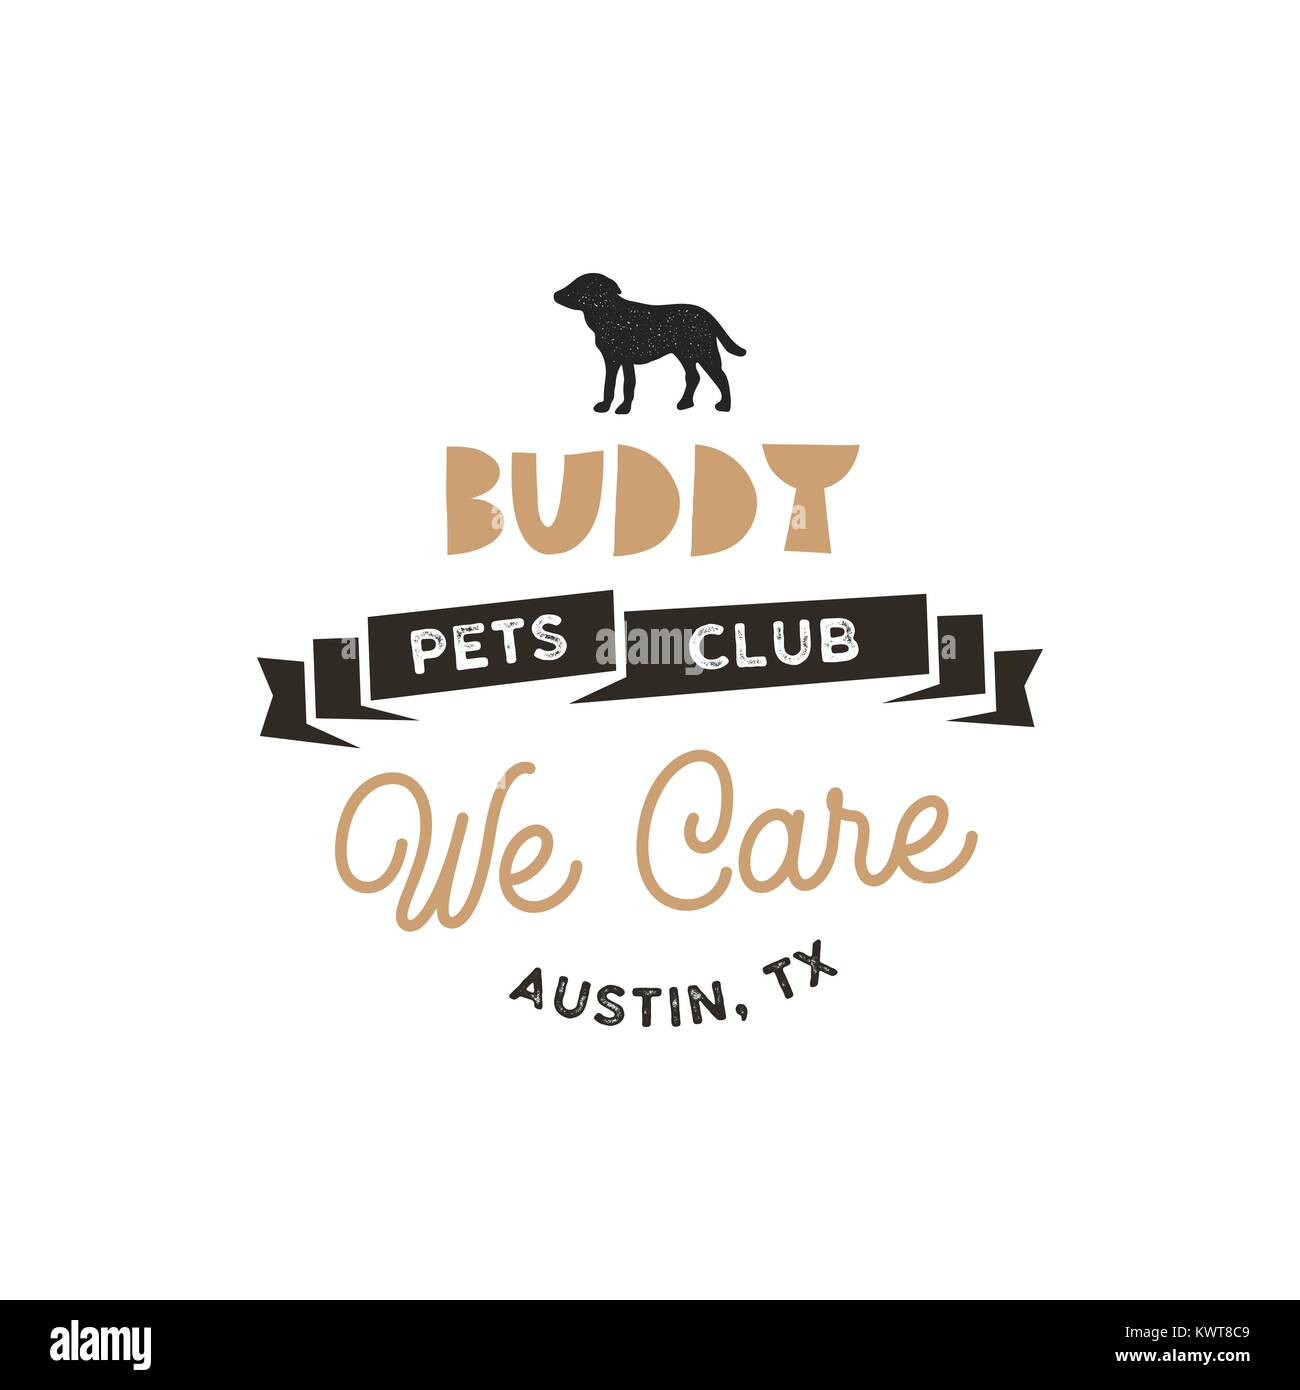 Buddy Pet Club Logo Template Silhouette Label Illustration Isolated On White Background Modern Animal Badge For Veterinary Clinic Food